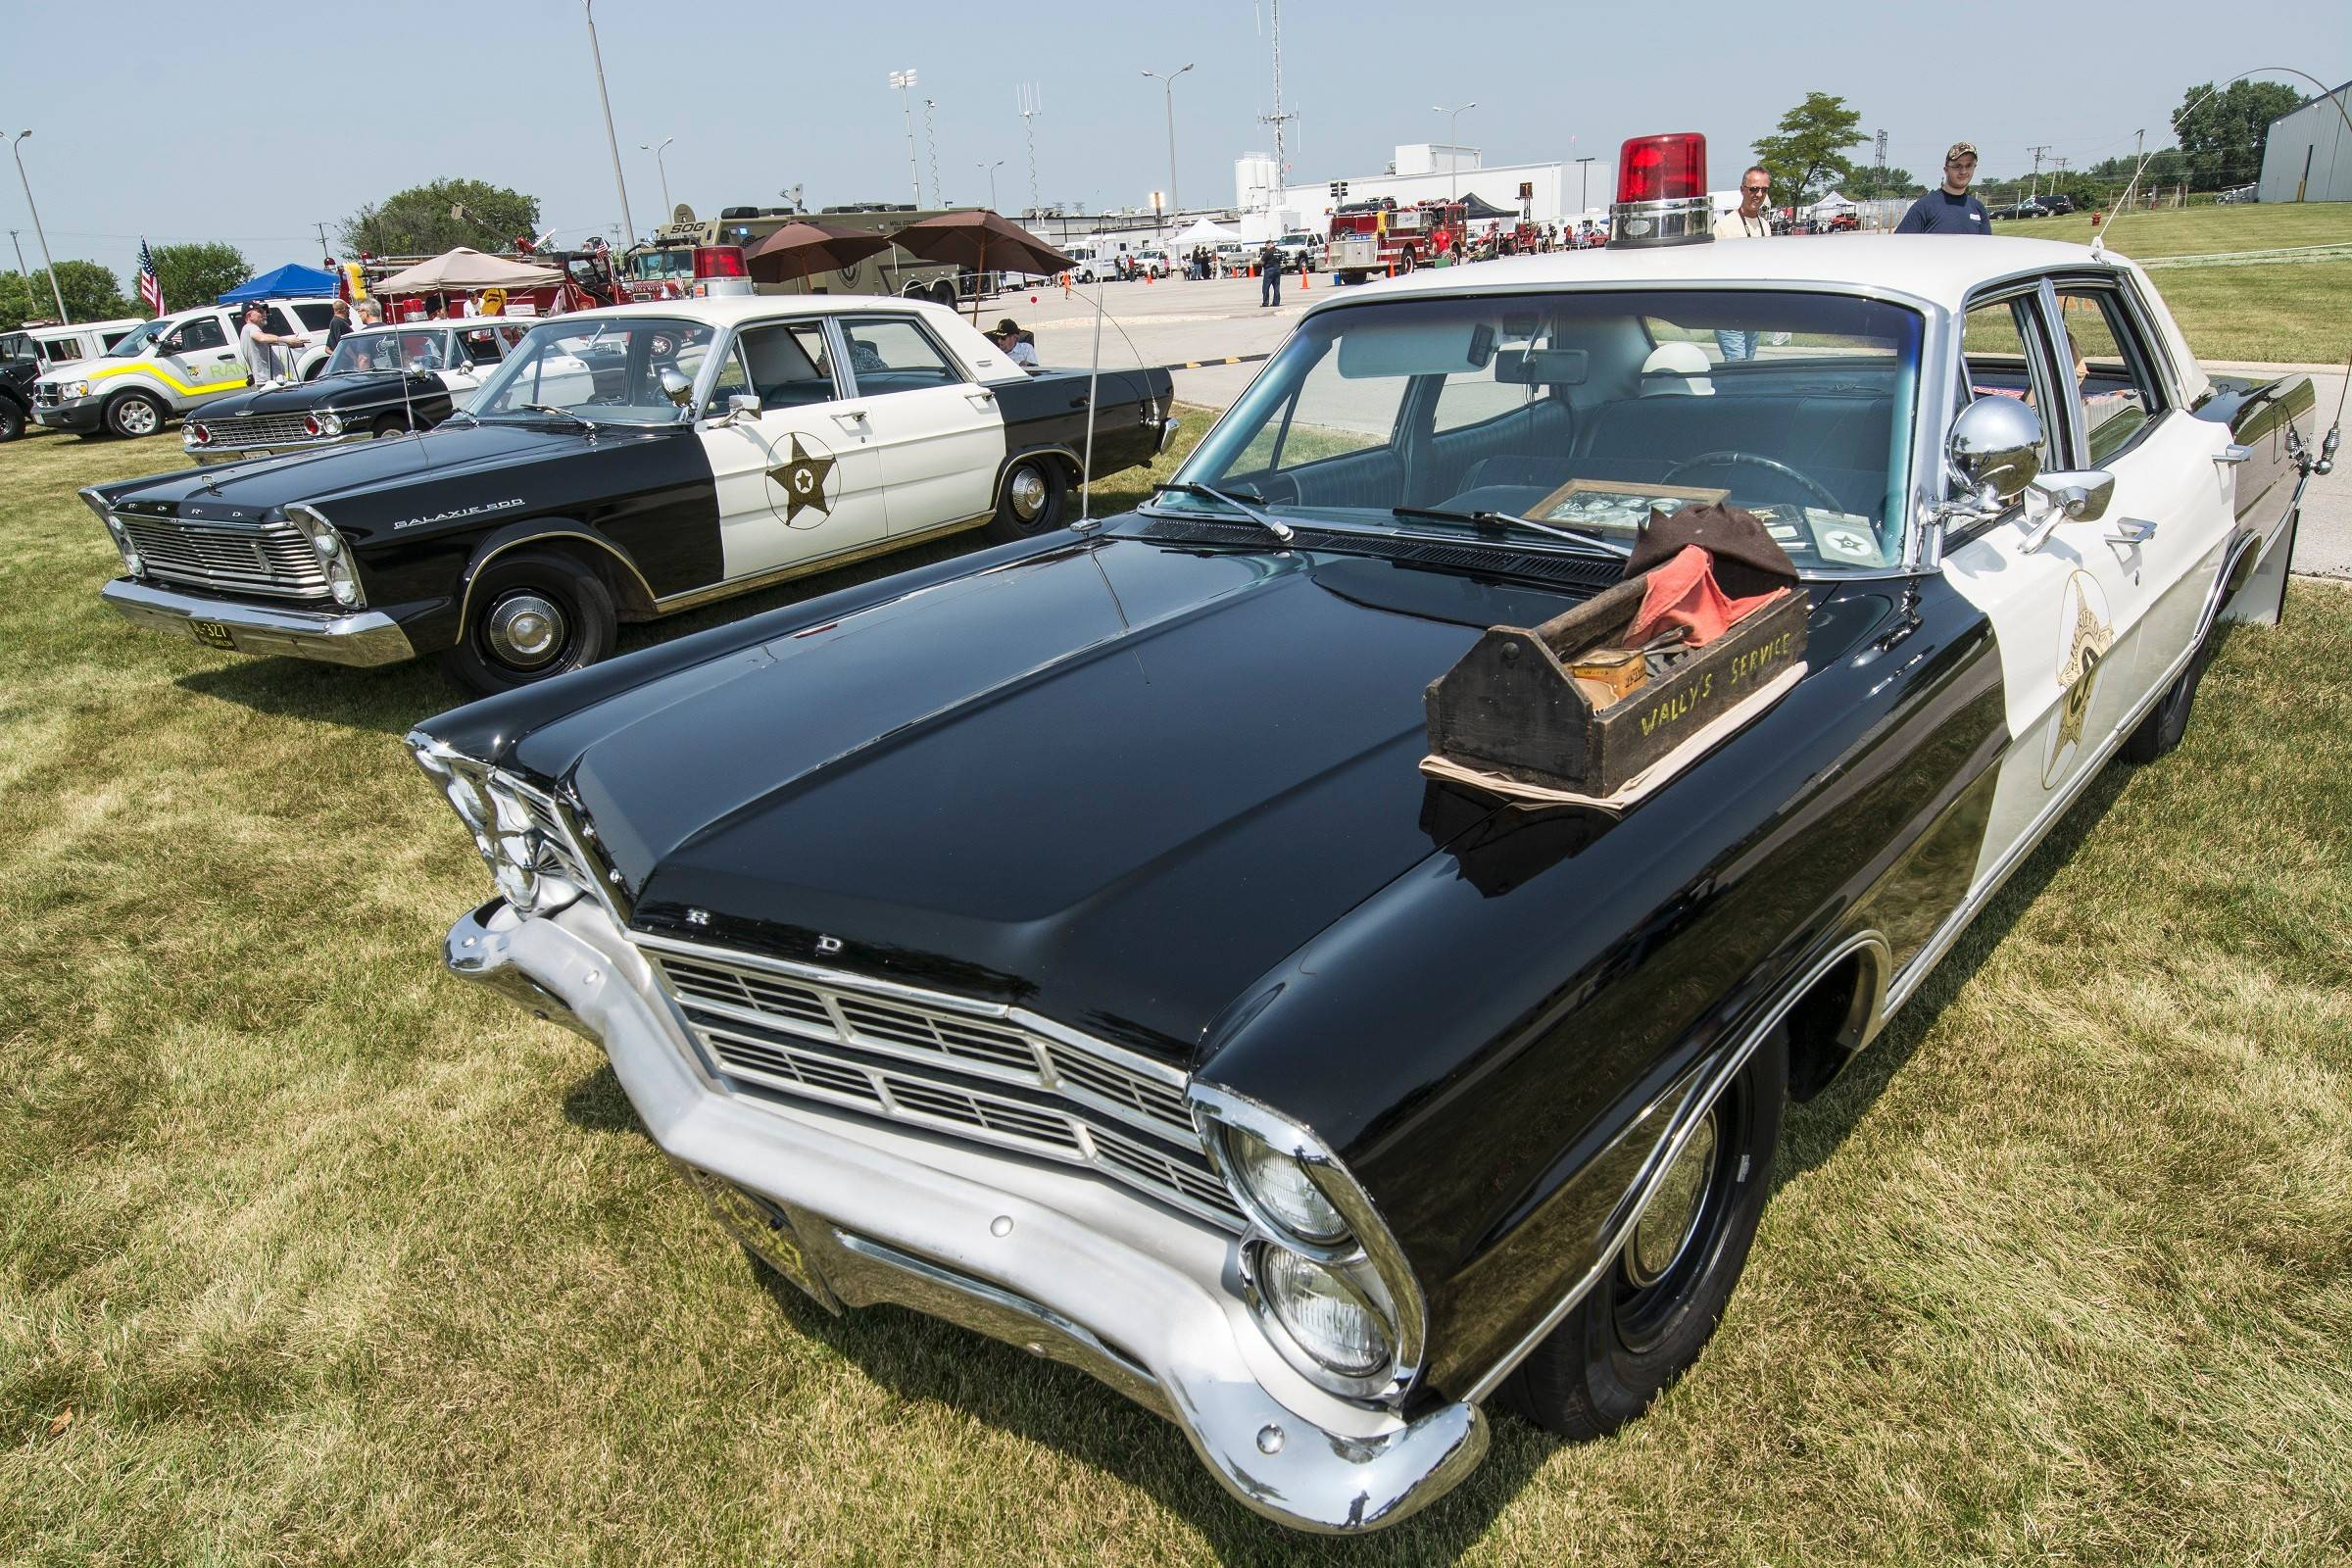 Vintage police cars and fire department vehicles, lovingly restored by auto enthusiasts, were gathered at the annual Chicagoland Emergency Vehicle Show Aug. 2.